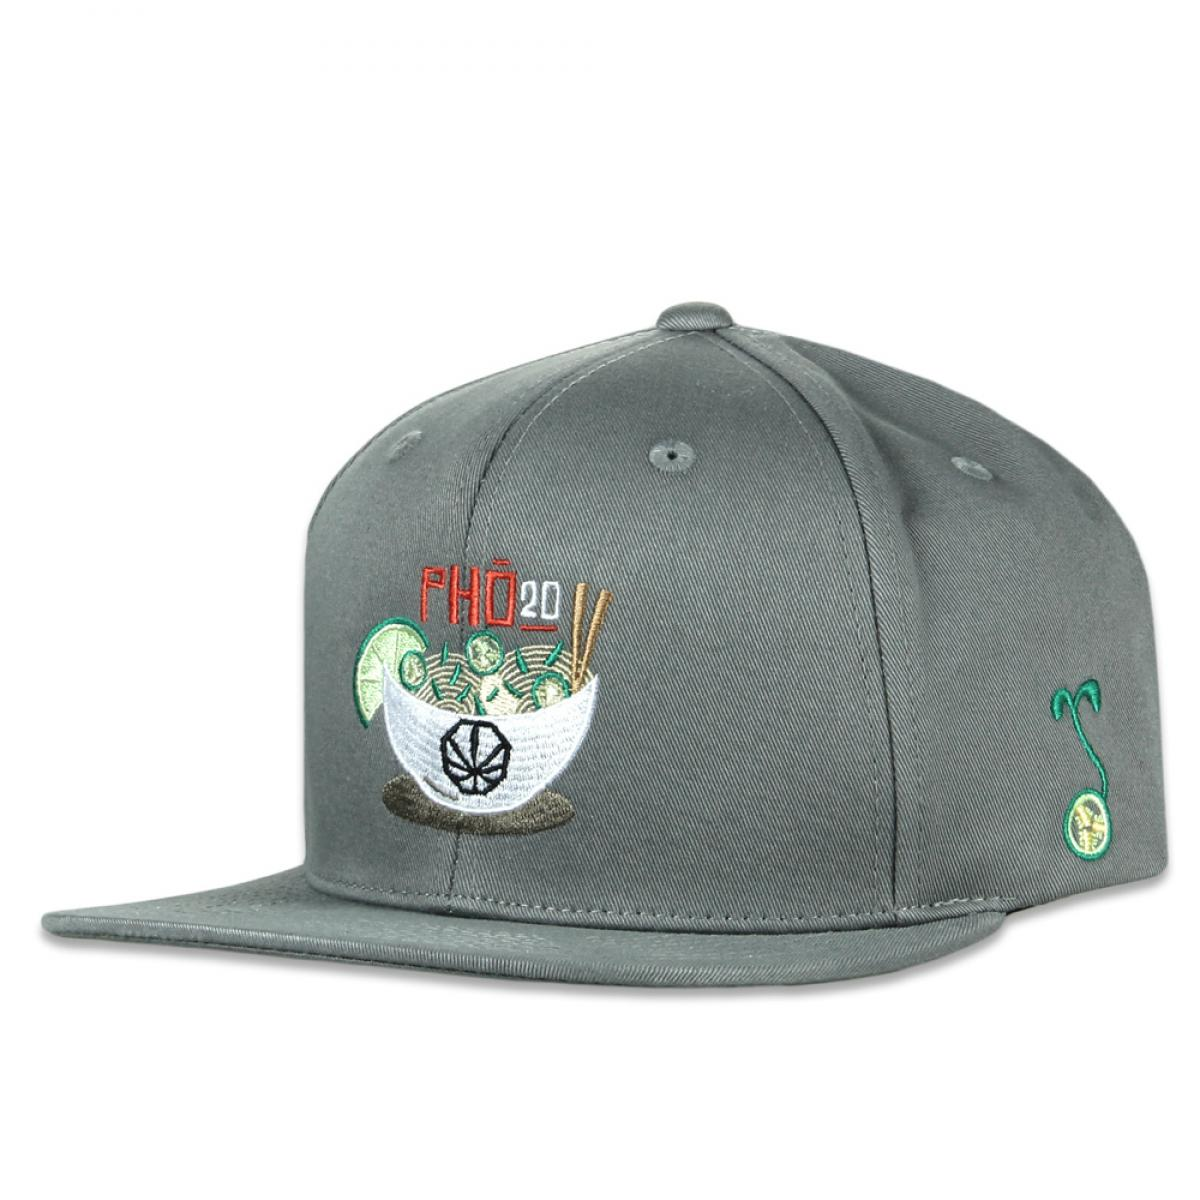 pho20 gray pro fit hat - Grassroots